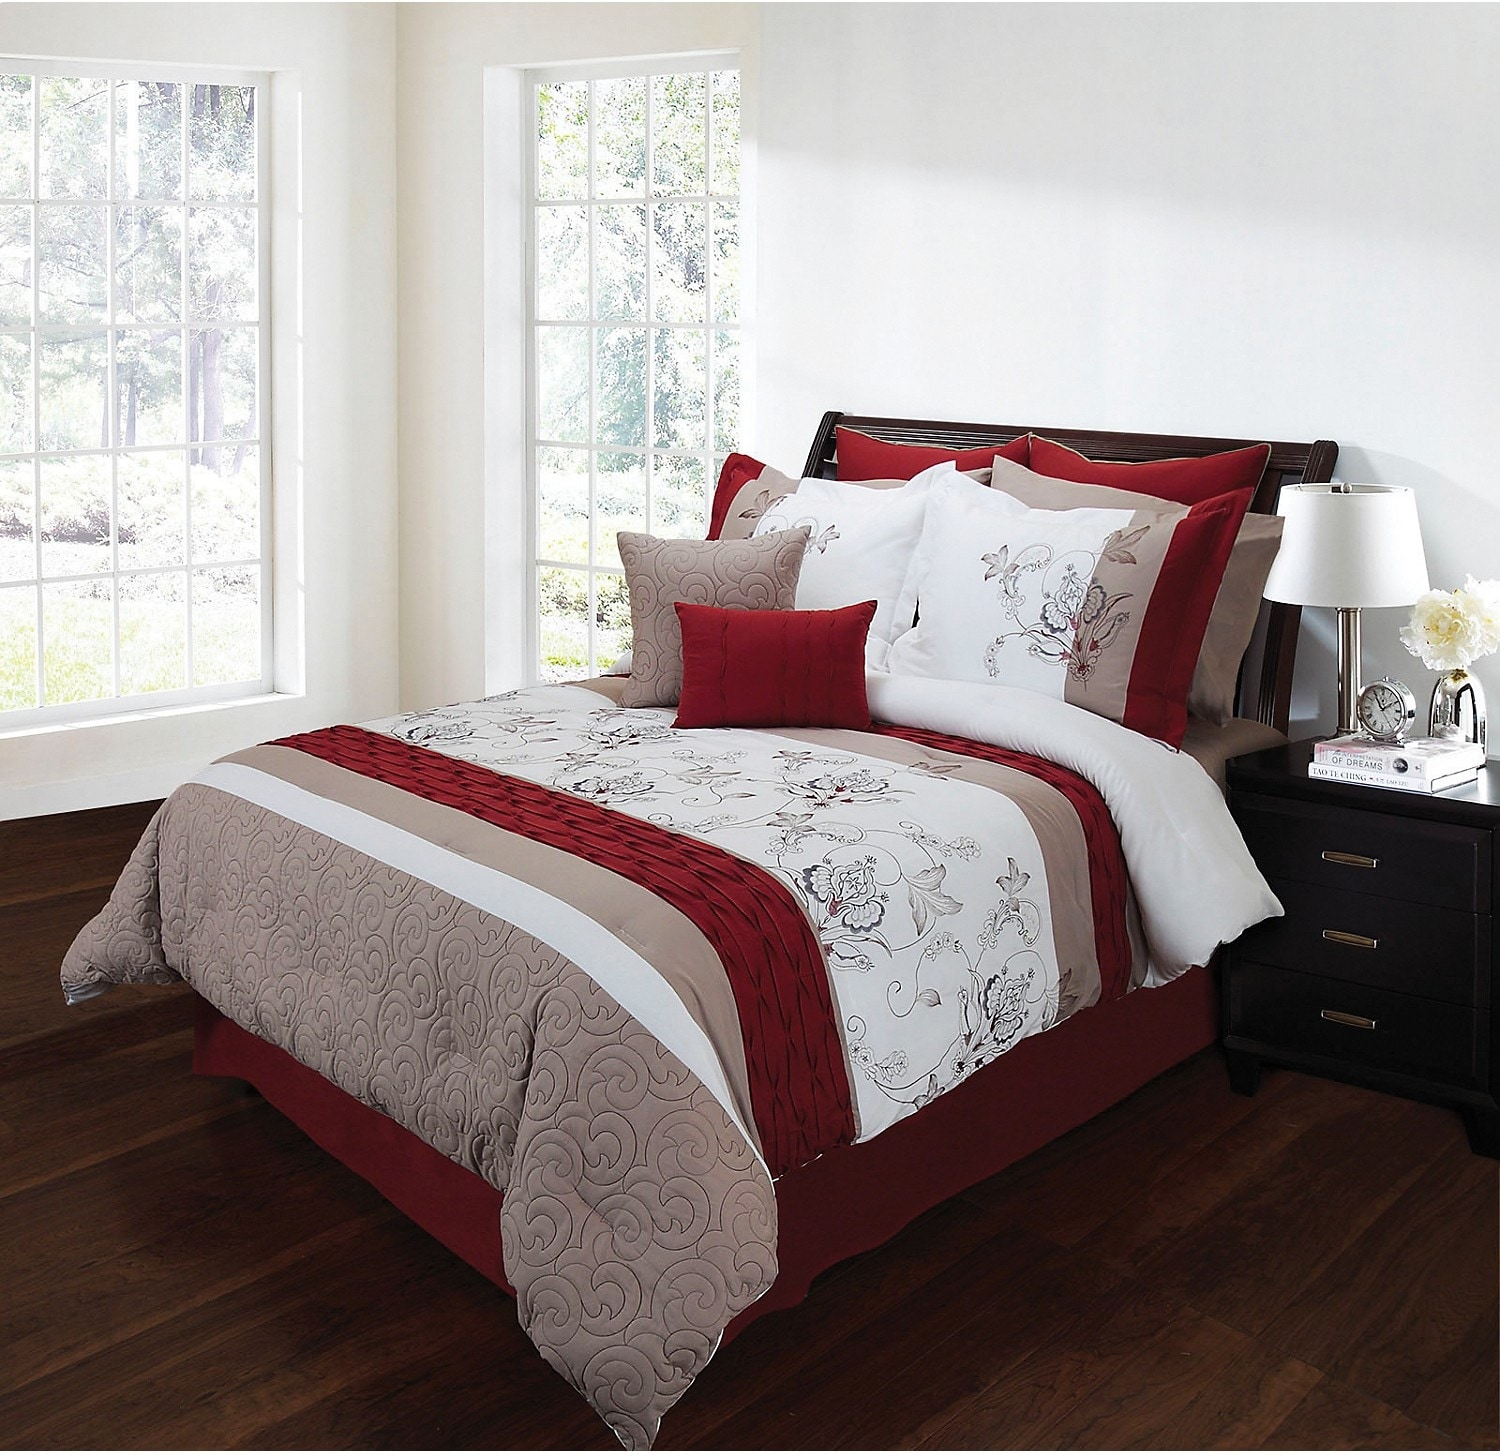 Mattresses and Bedding - Eloise 8-Piece King Comforter Set